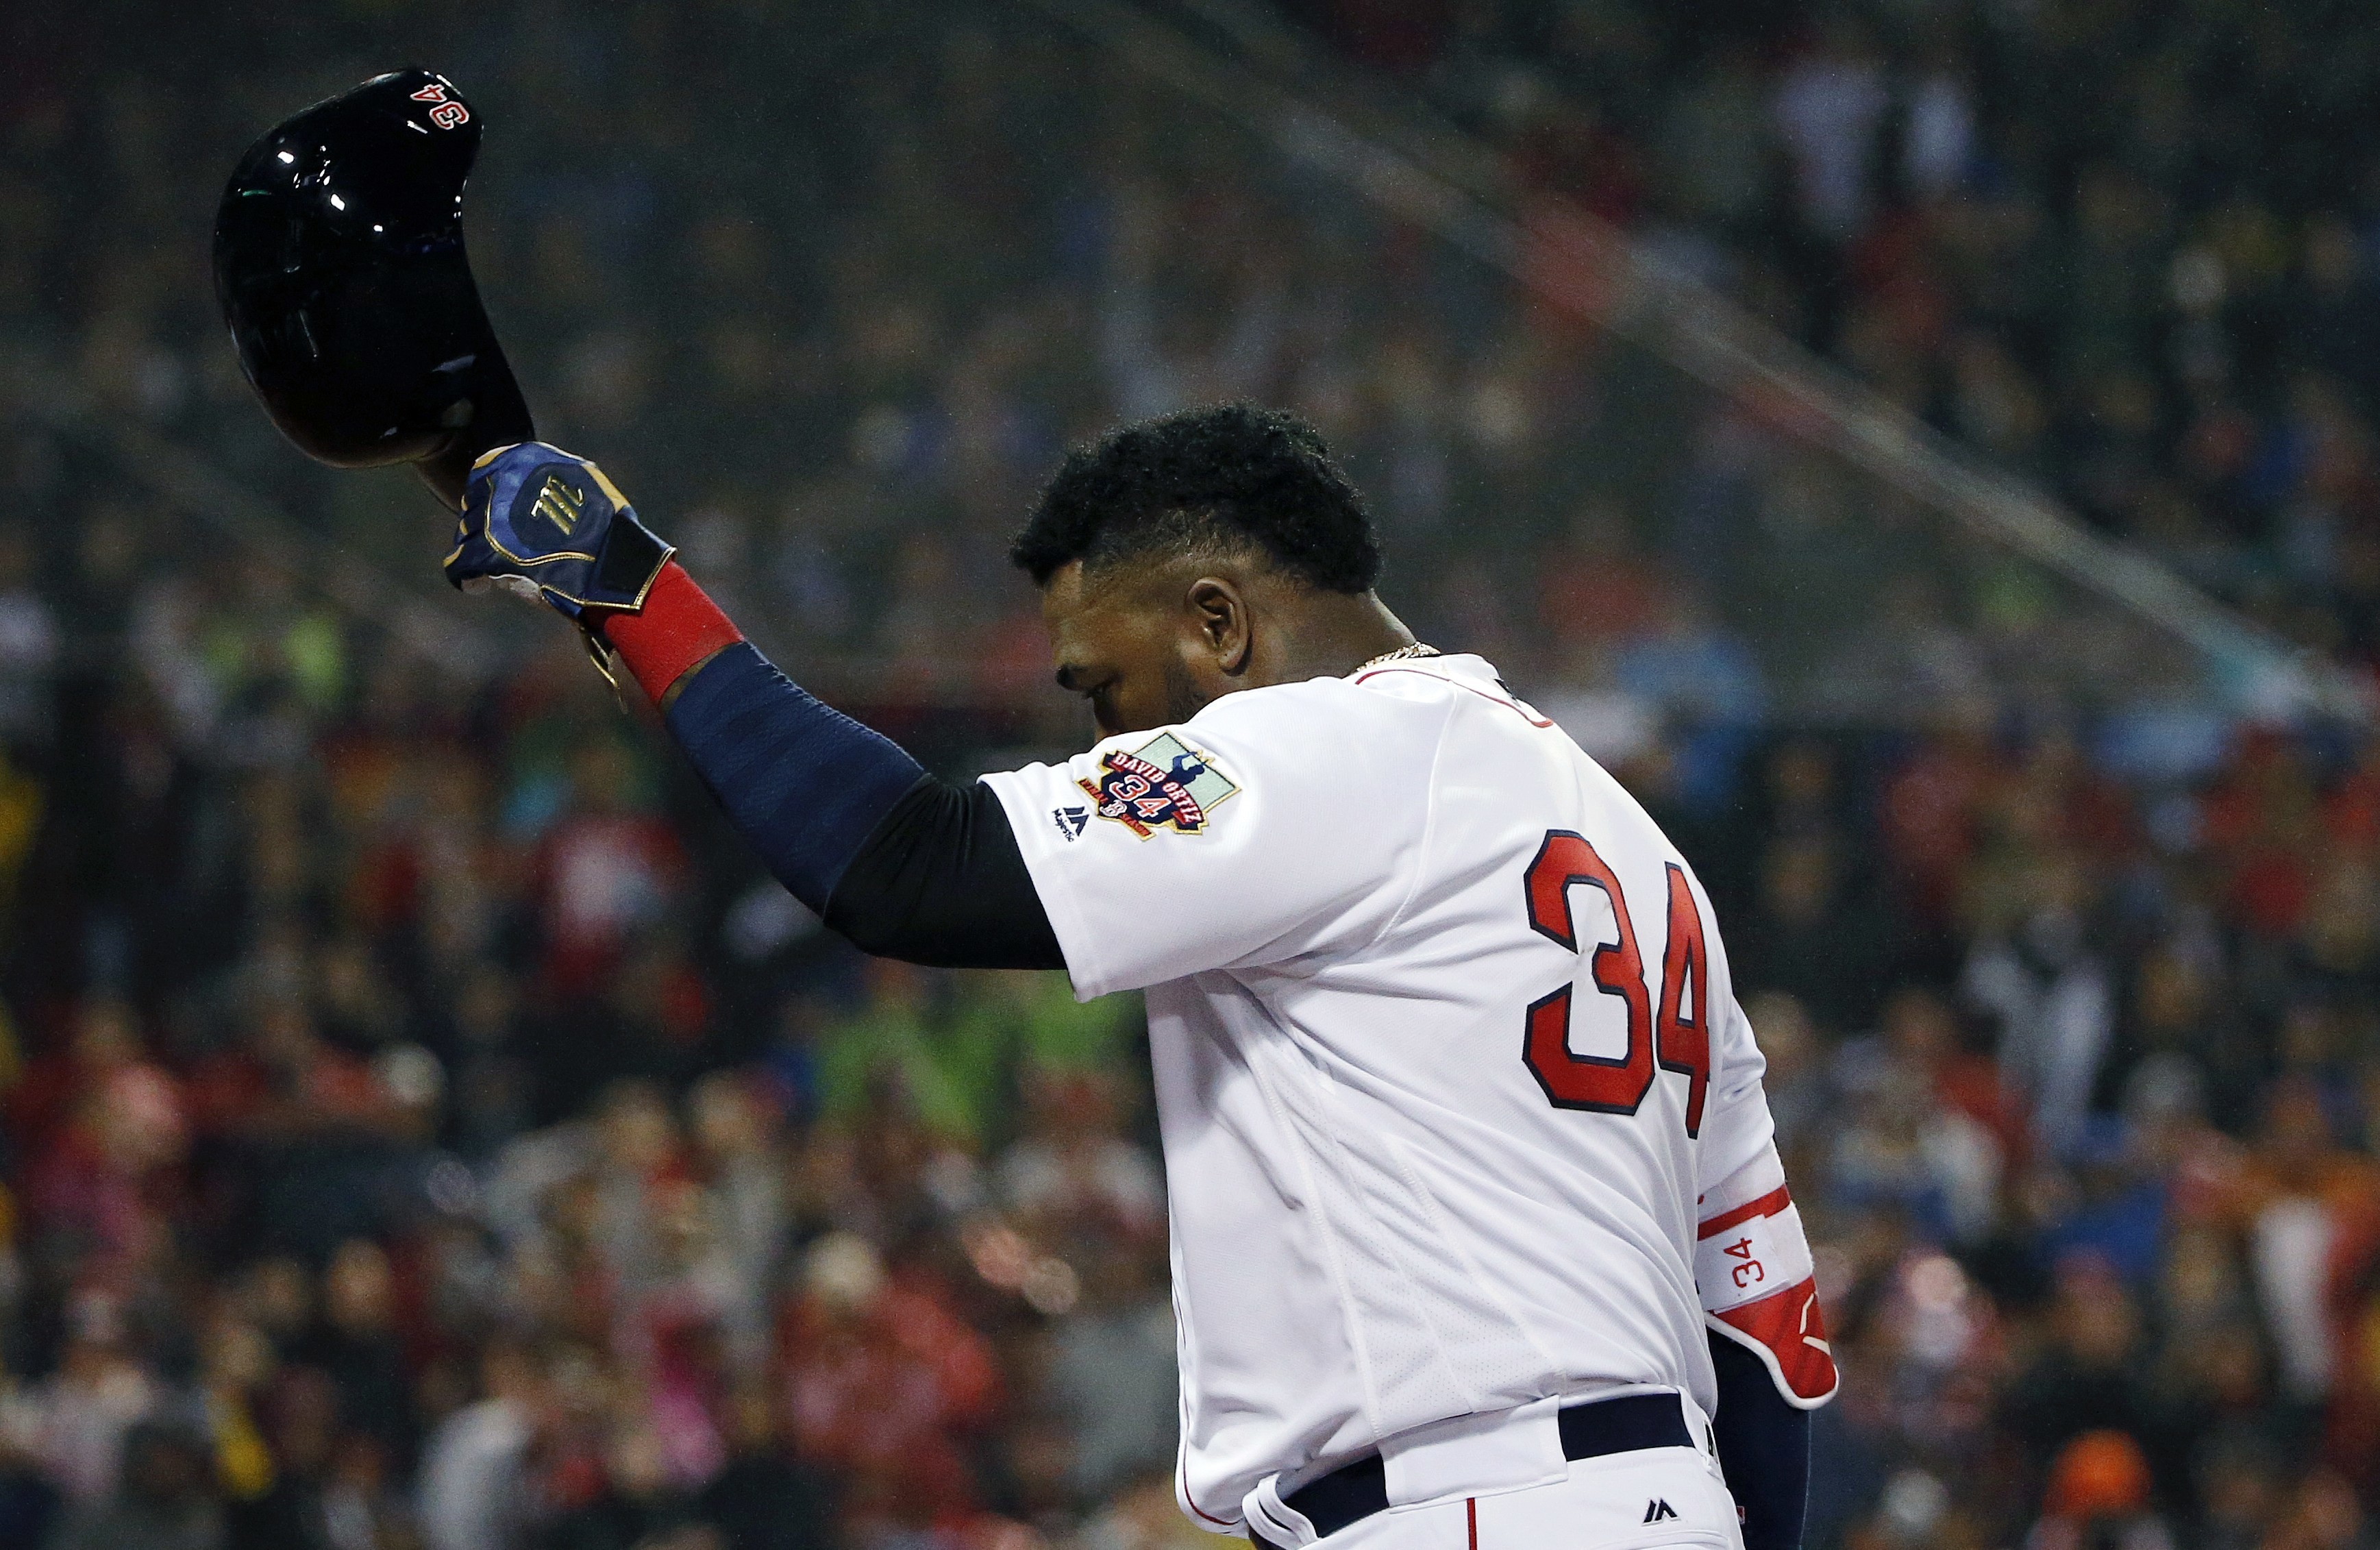 Boston Red Sox's David Ortiz tips his helmet as he walks off the field after Travis Shaw was sent in to pinch run on Oritz's single during the fifth inning of a baseball game against the Toronto Blue Jays in Boston, Saturday, Oct. 1, 2016. (AP Photo/Micha